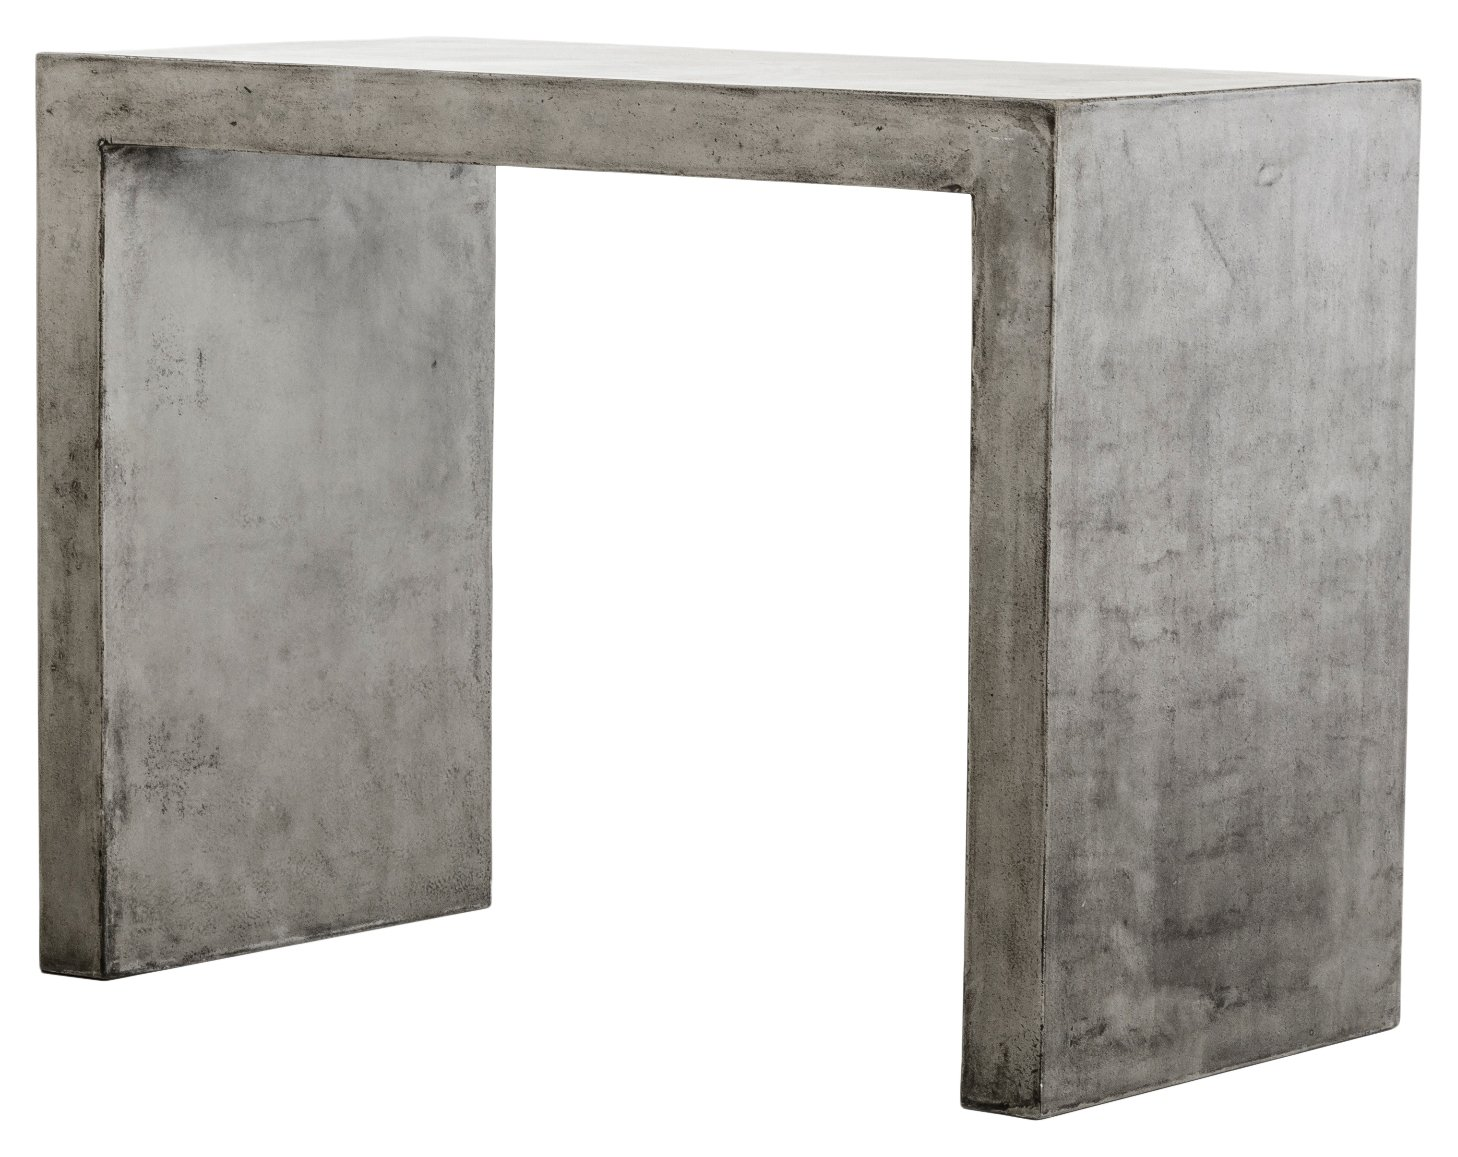 Limari Home The Malika Collection Modern Fiber Reinforced Natural Concrete Bar Table With Acrylic Sealed Finish, Gray